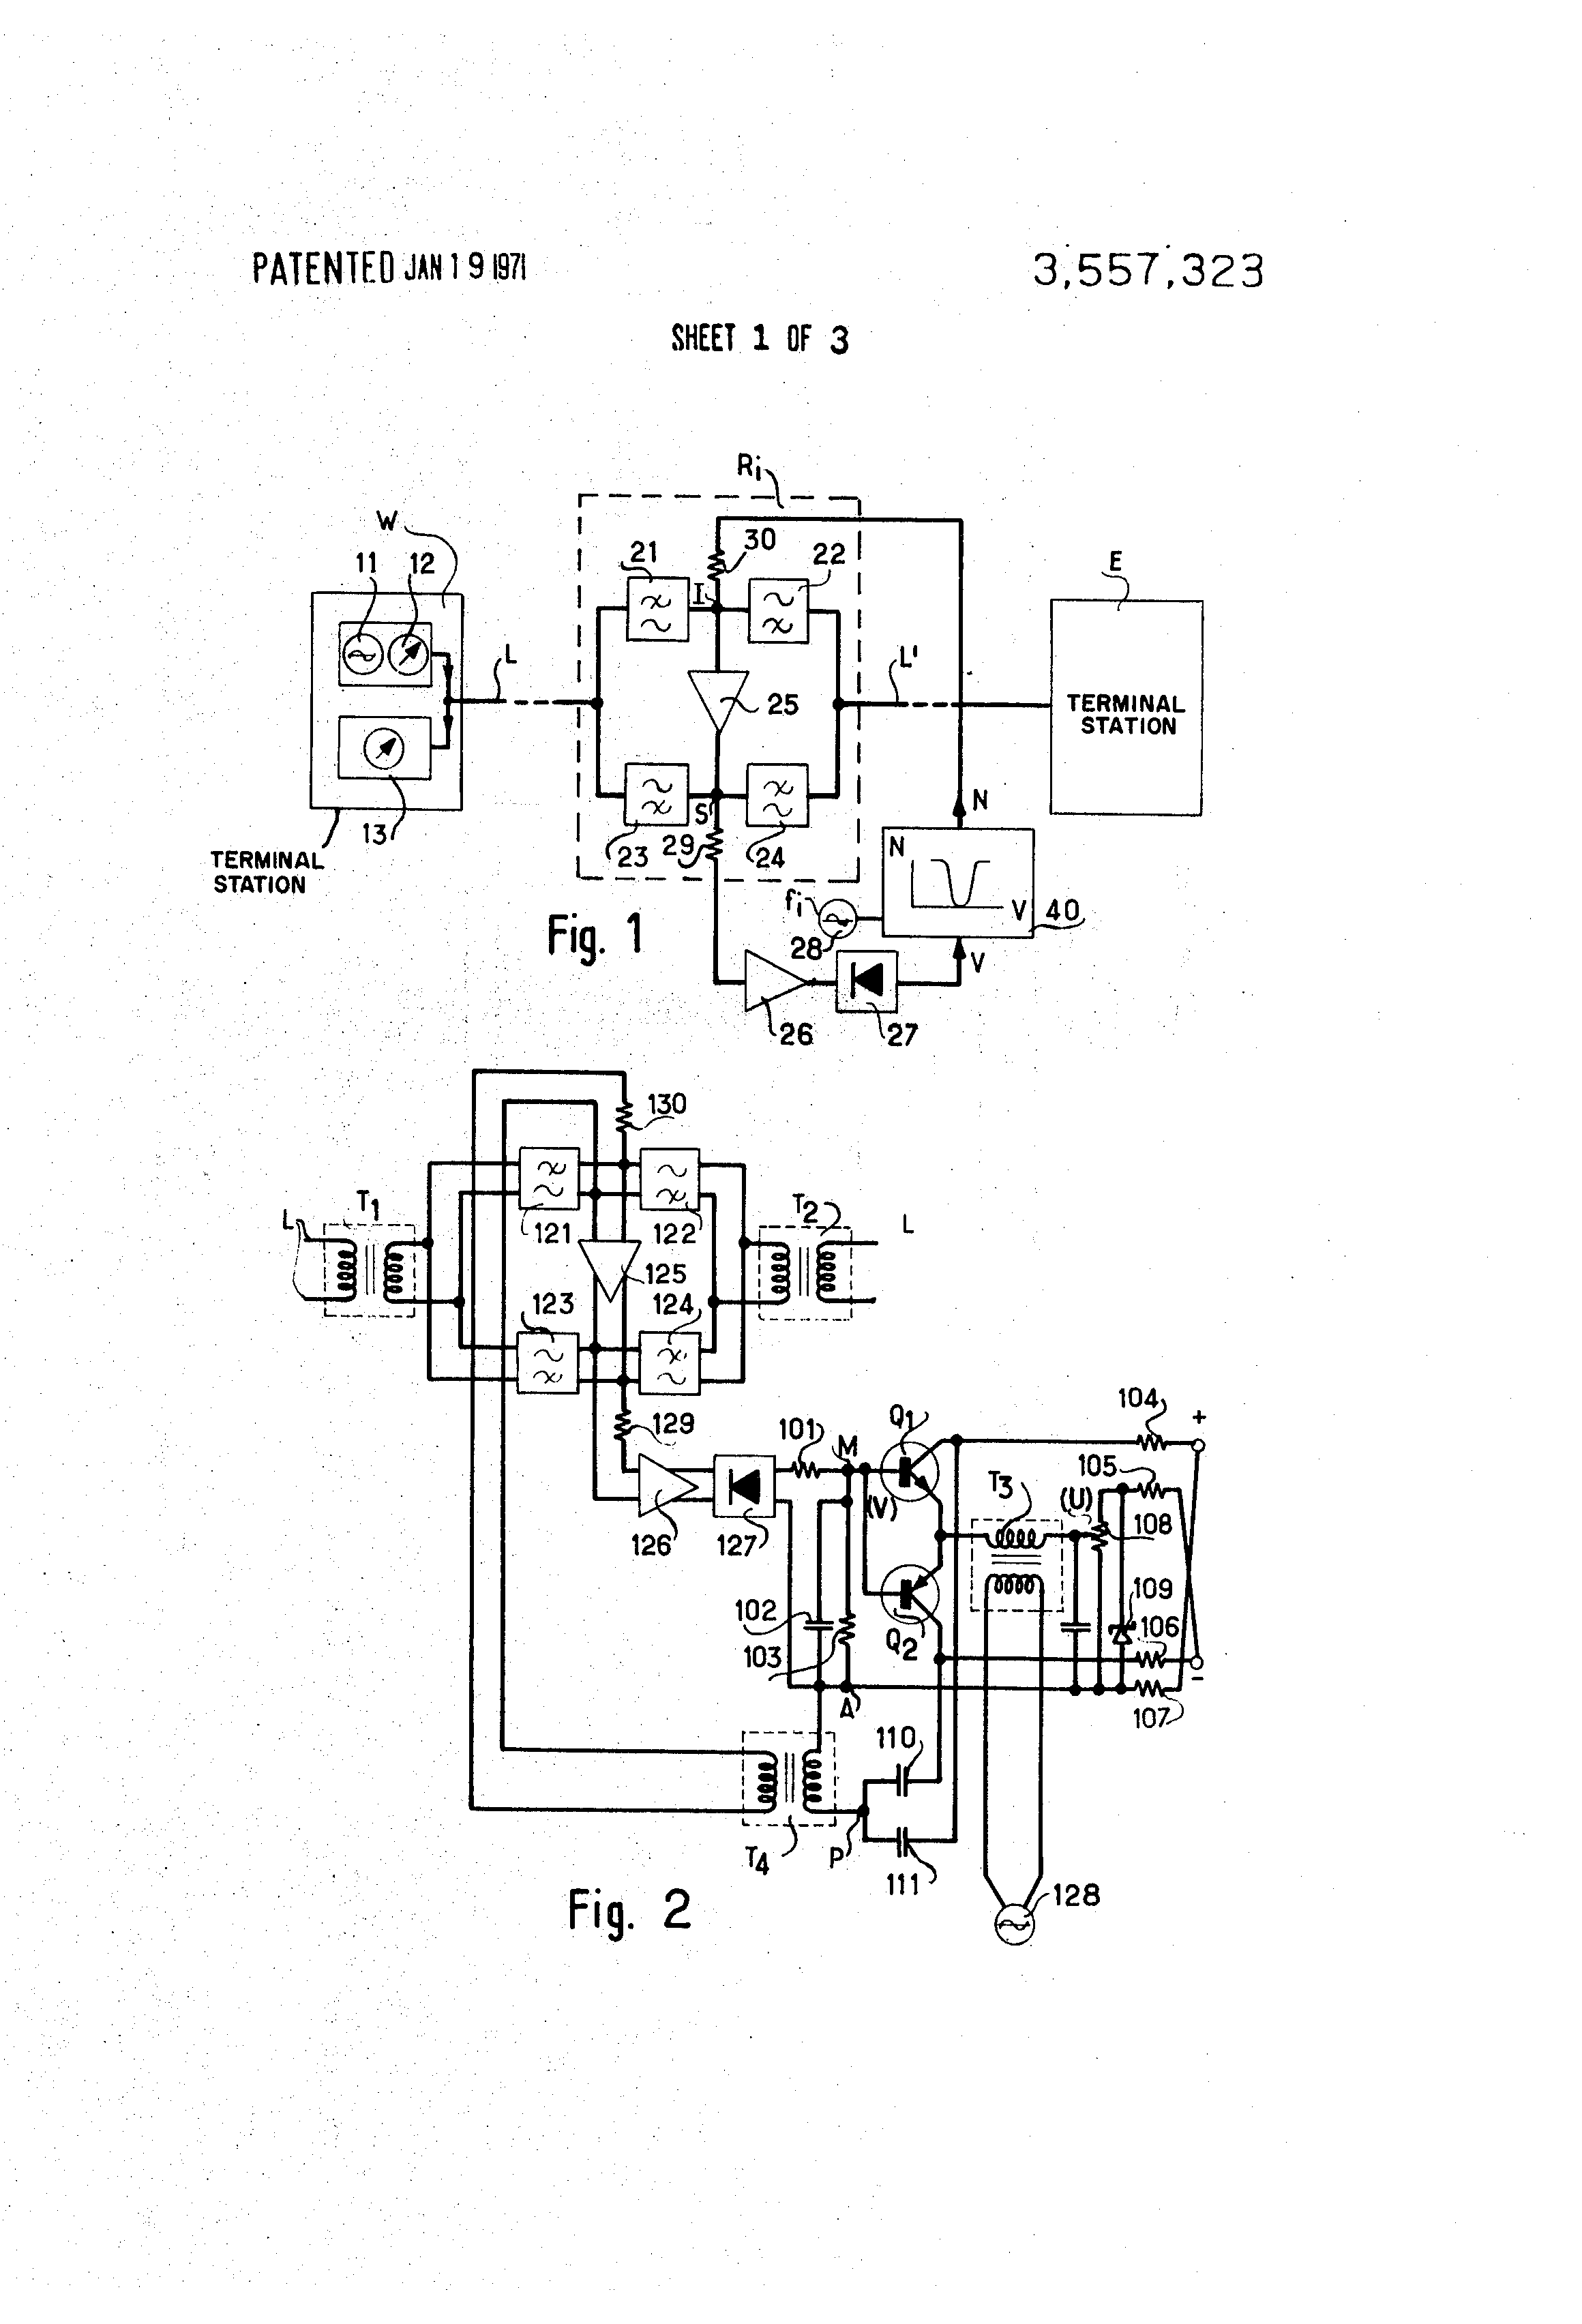 Repeater emitter transistor: principle of operation 13